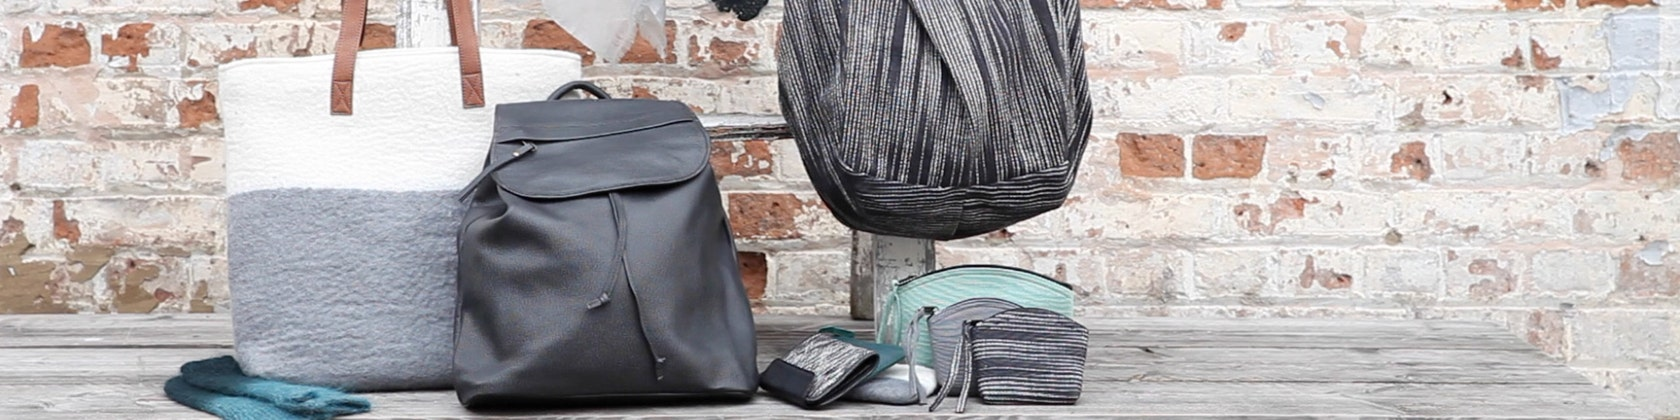 78a38fcddf72 Bags   accessories ethically handmade in Nepal by AURAQUEDesign